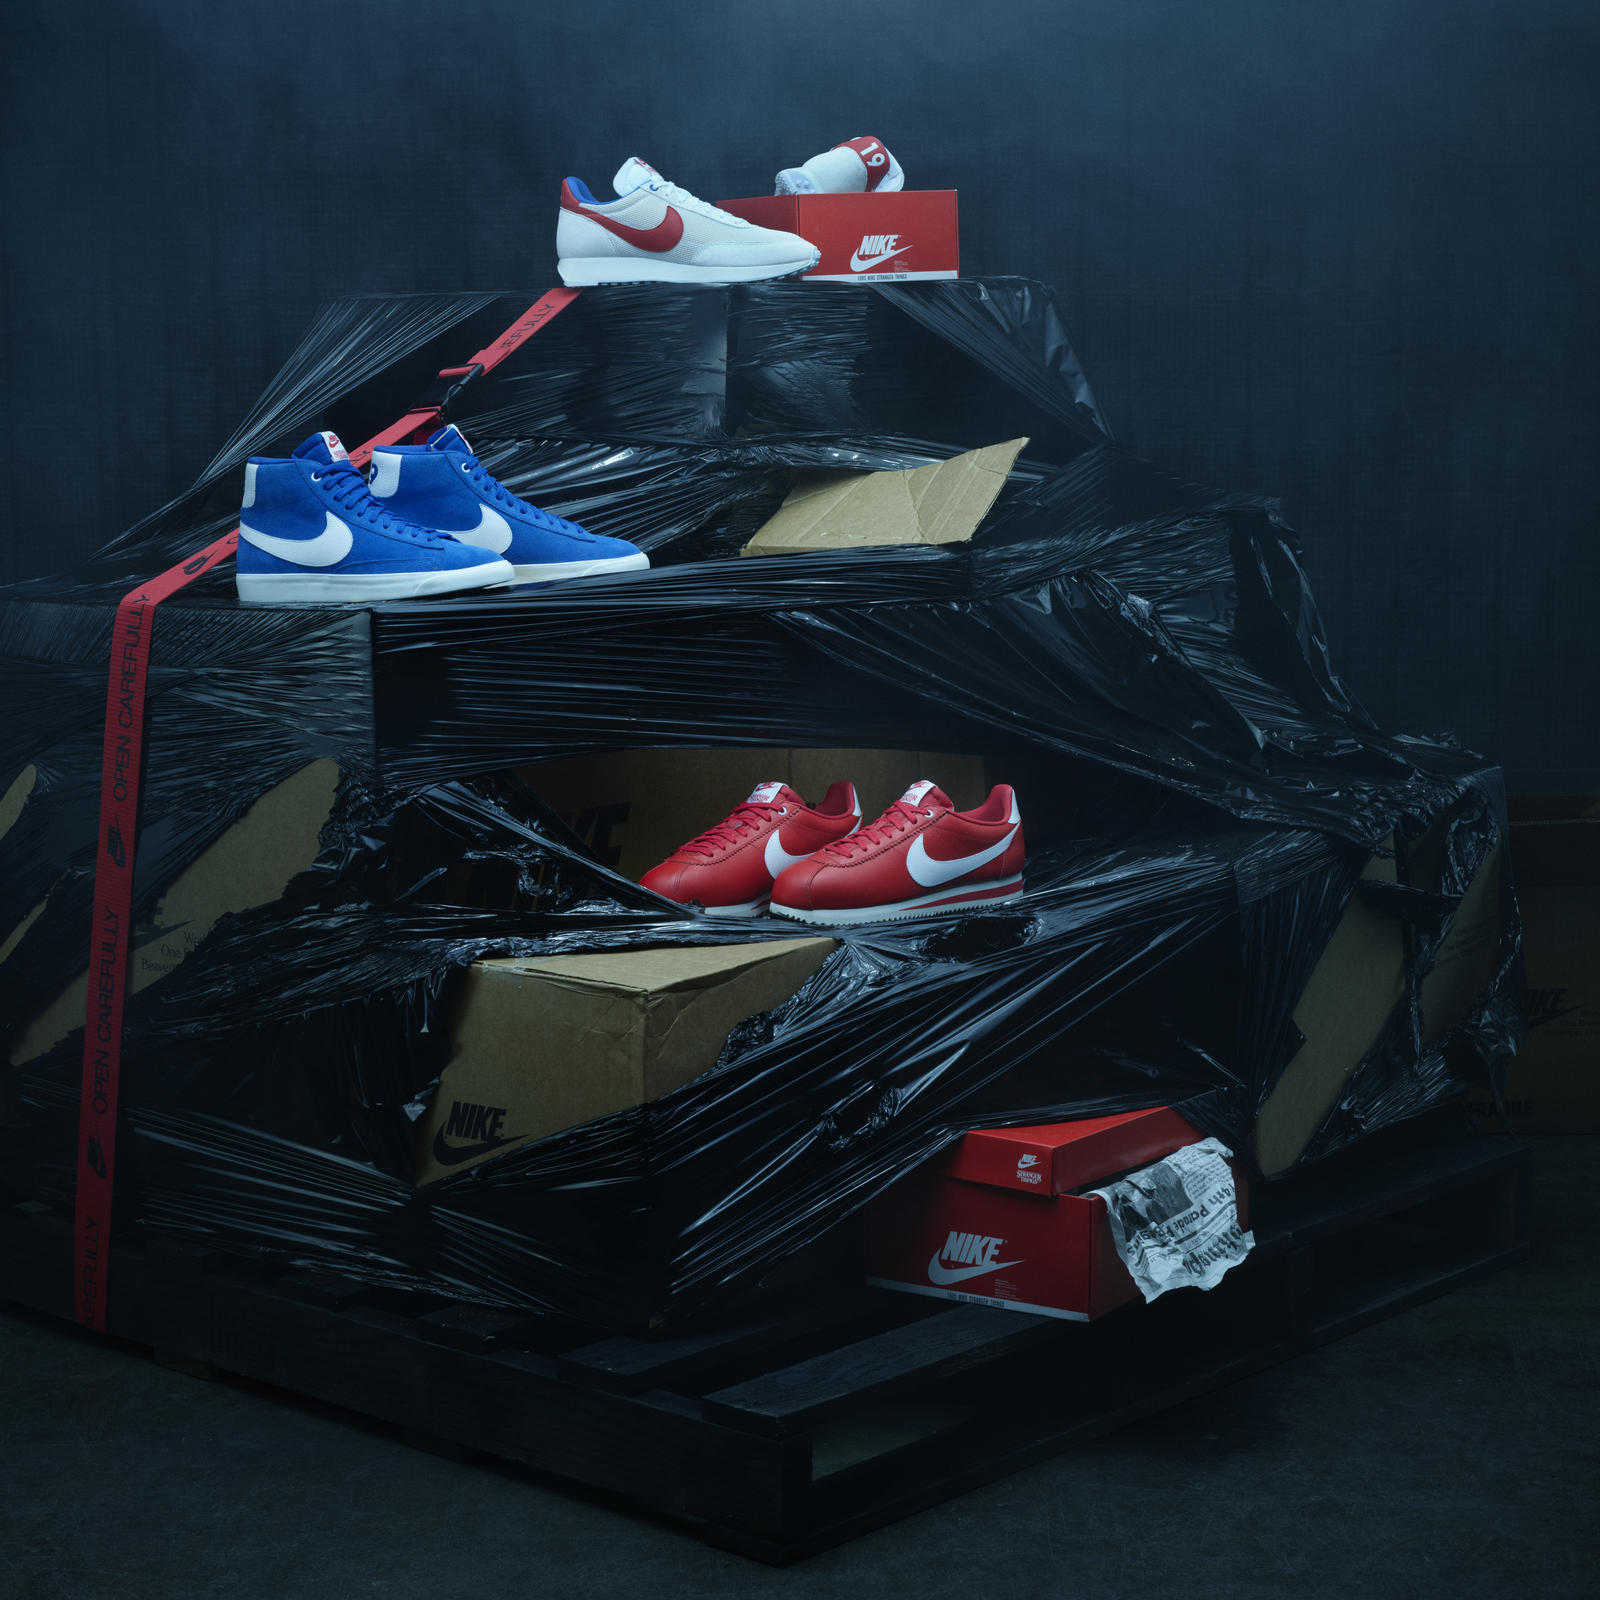 nike-stranger-things-collection-03_square_1600.jpg